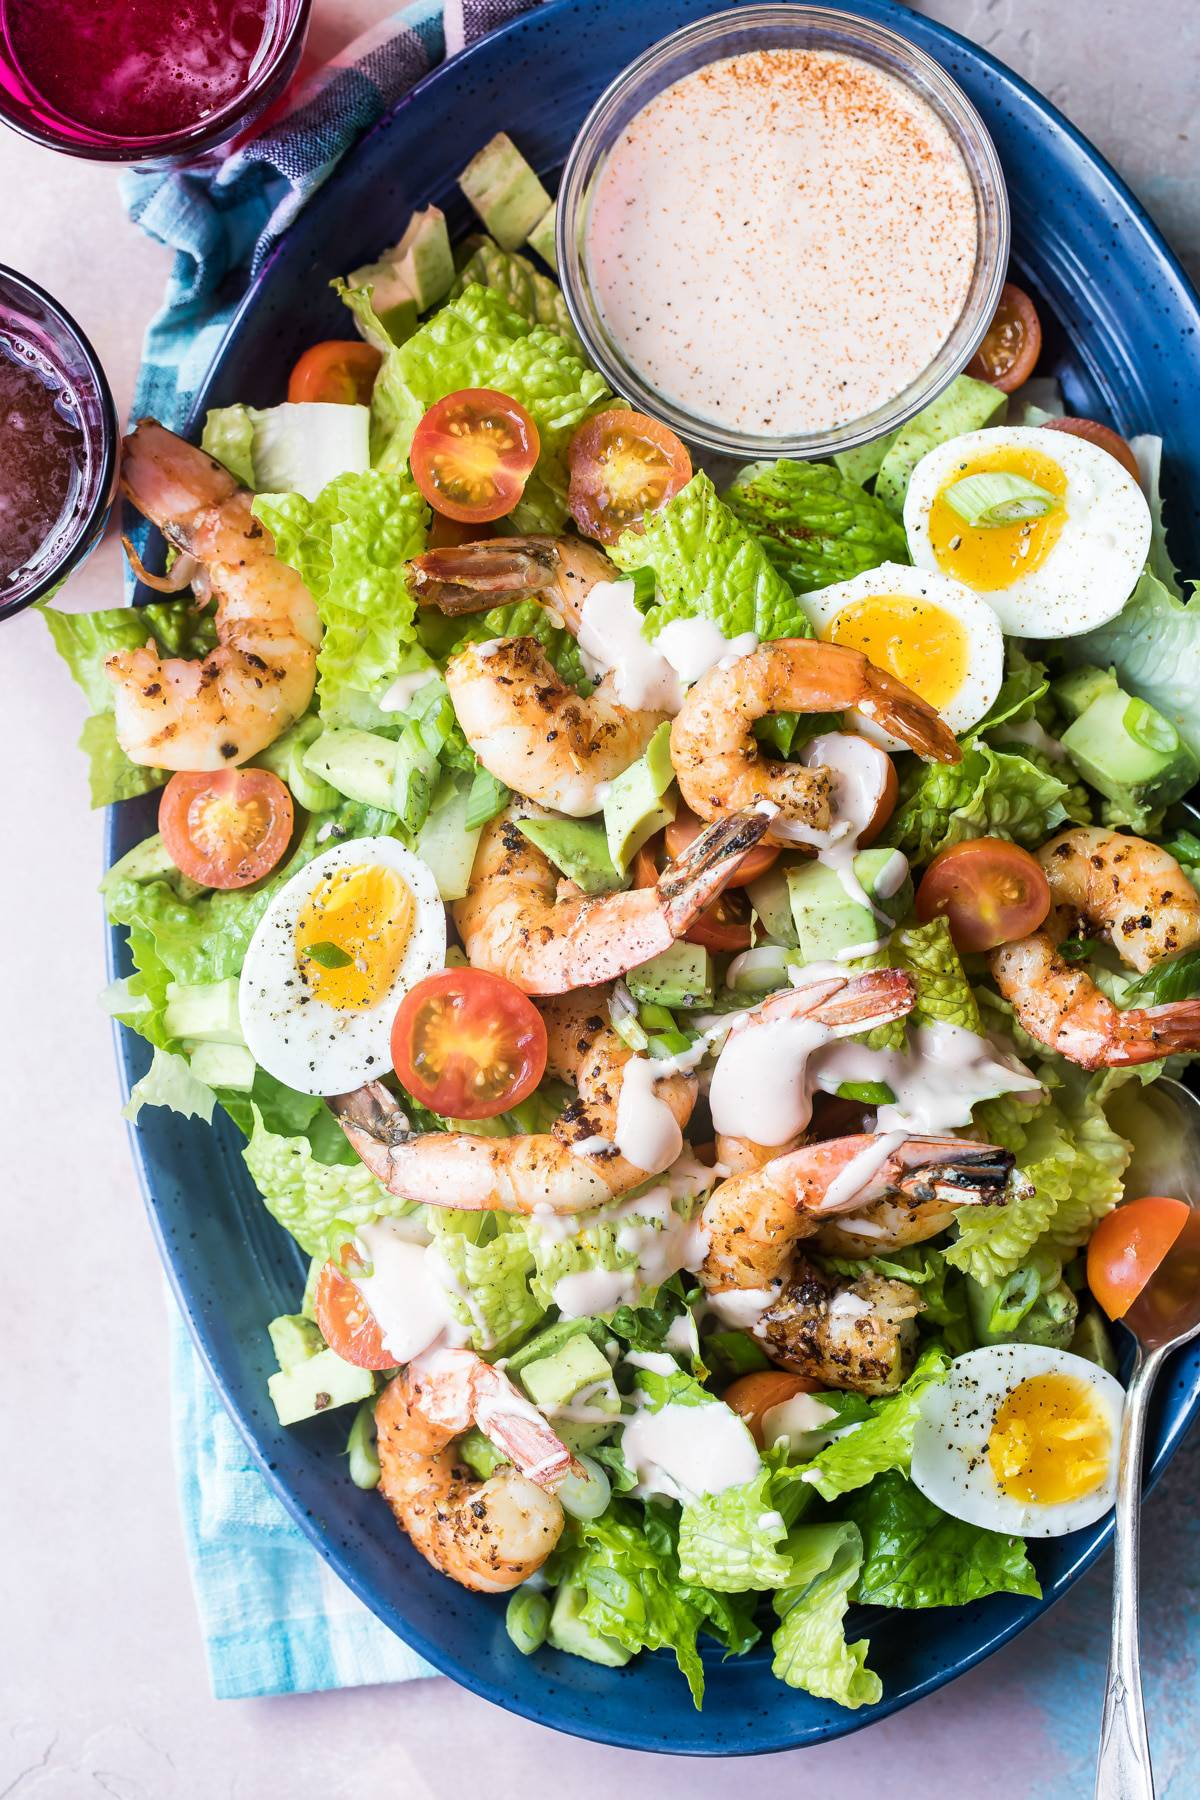 ingredients for a shrimp louie salad on a plate